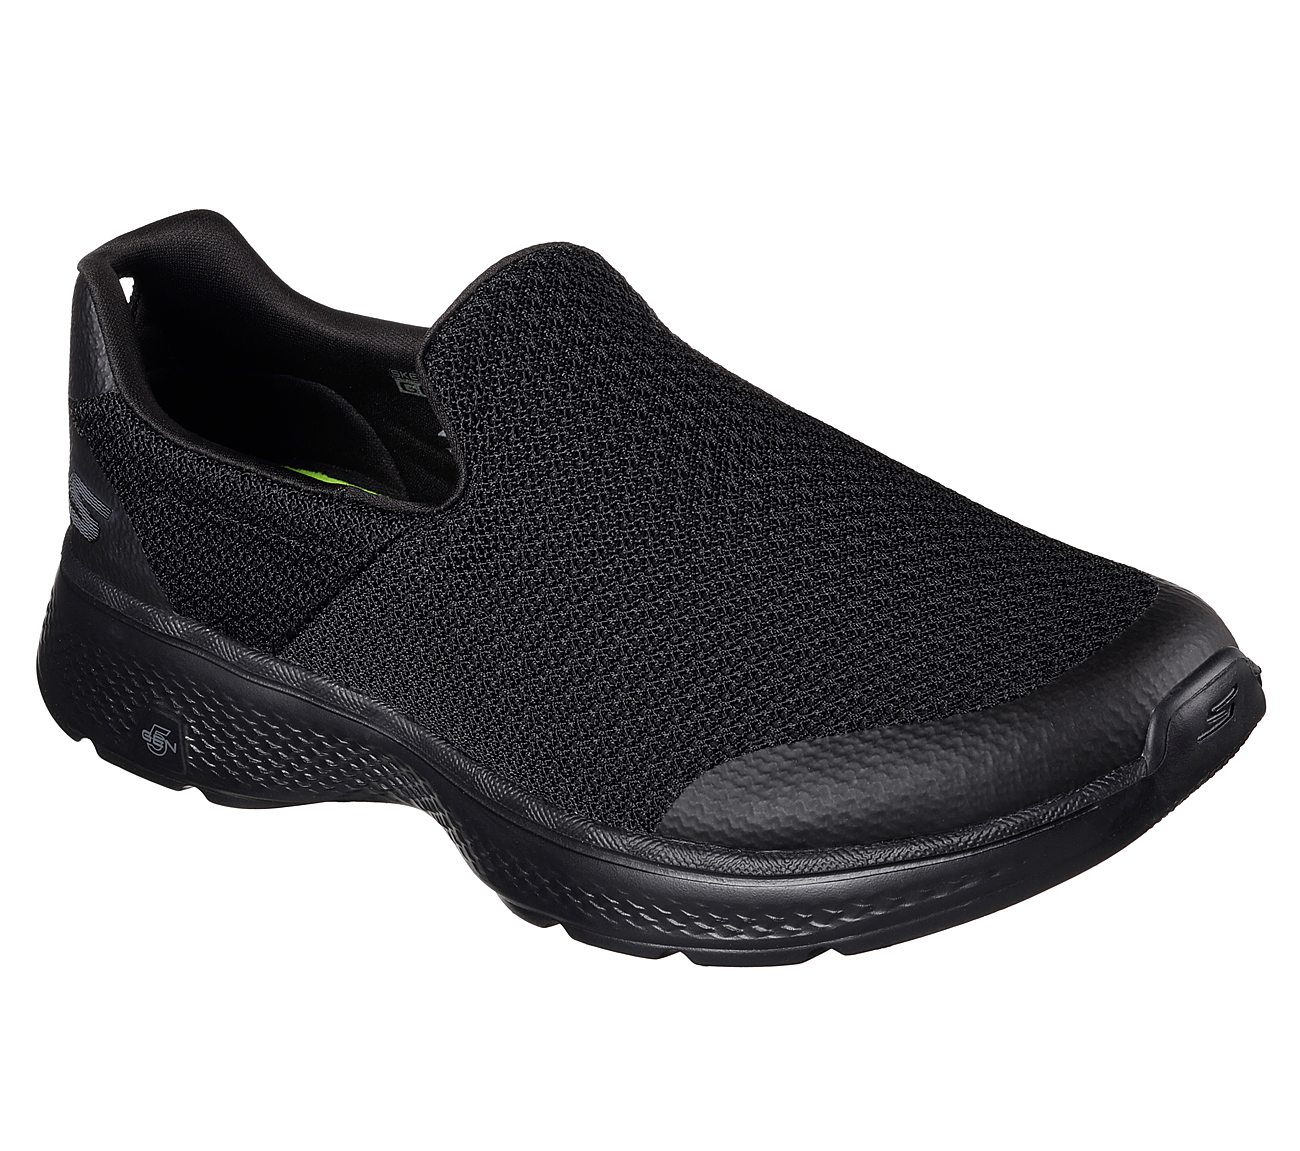 skechers walking shoes hover to zoom TAIFVAX